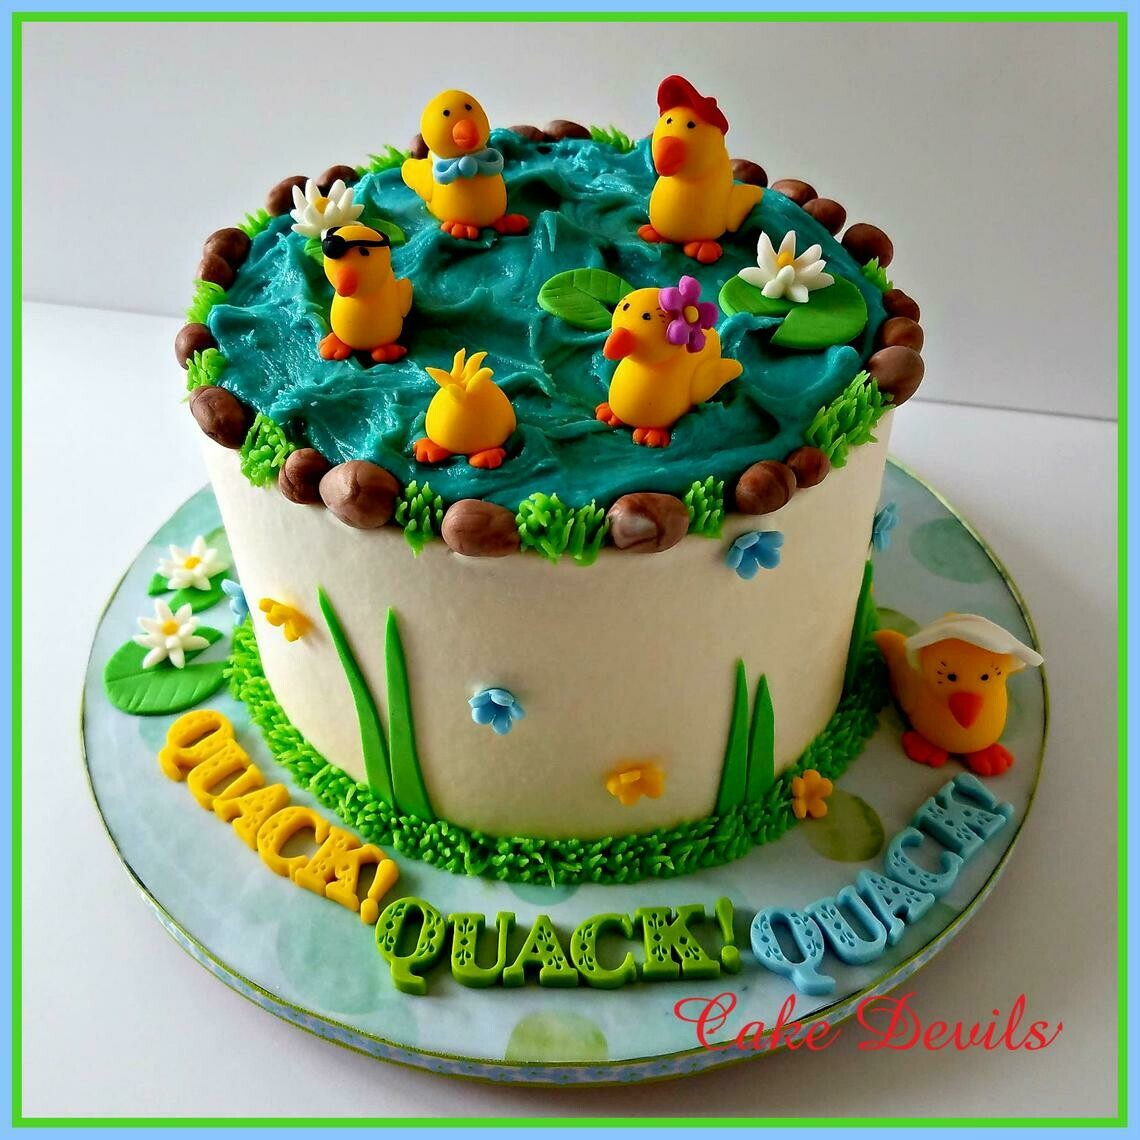 Fondant Ducks Cake Toppers, Five Little Ducks, Easter Cake, Rubber Ducky Cupcake Decorations